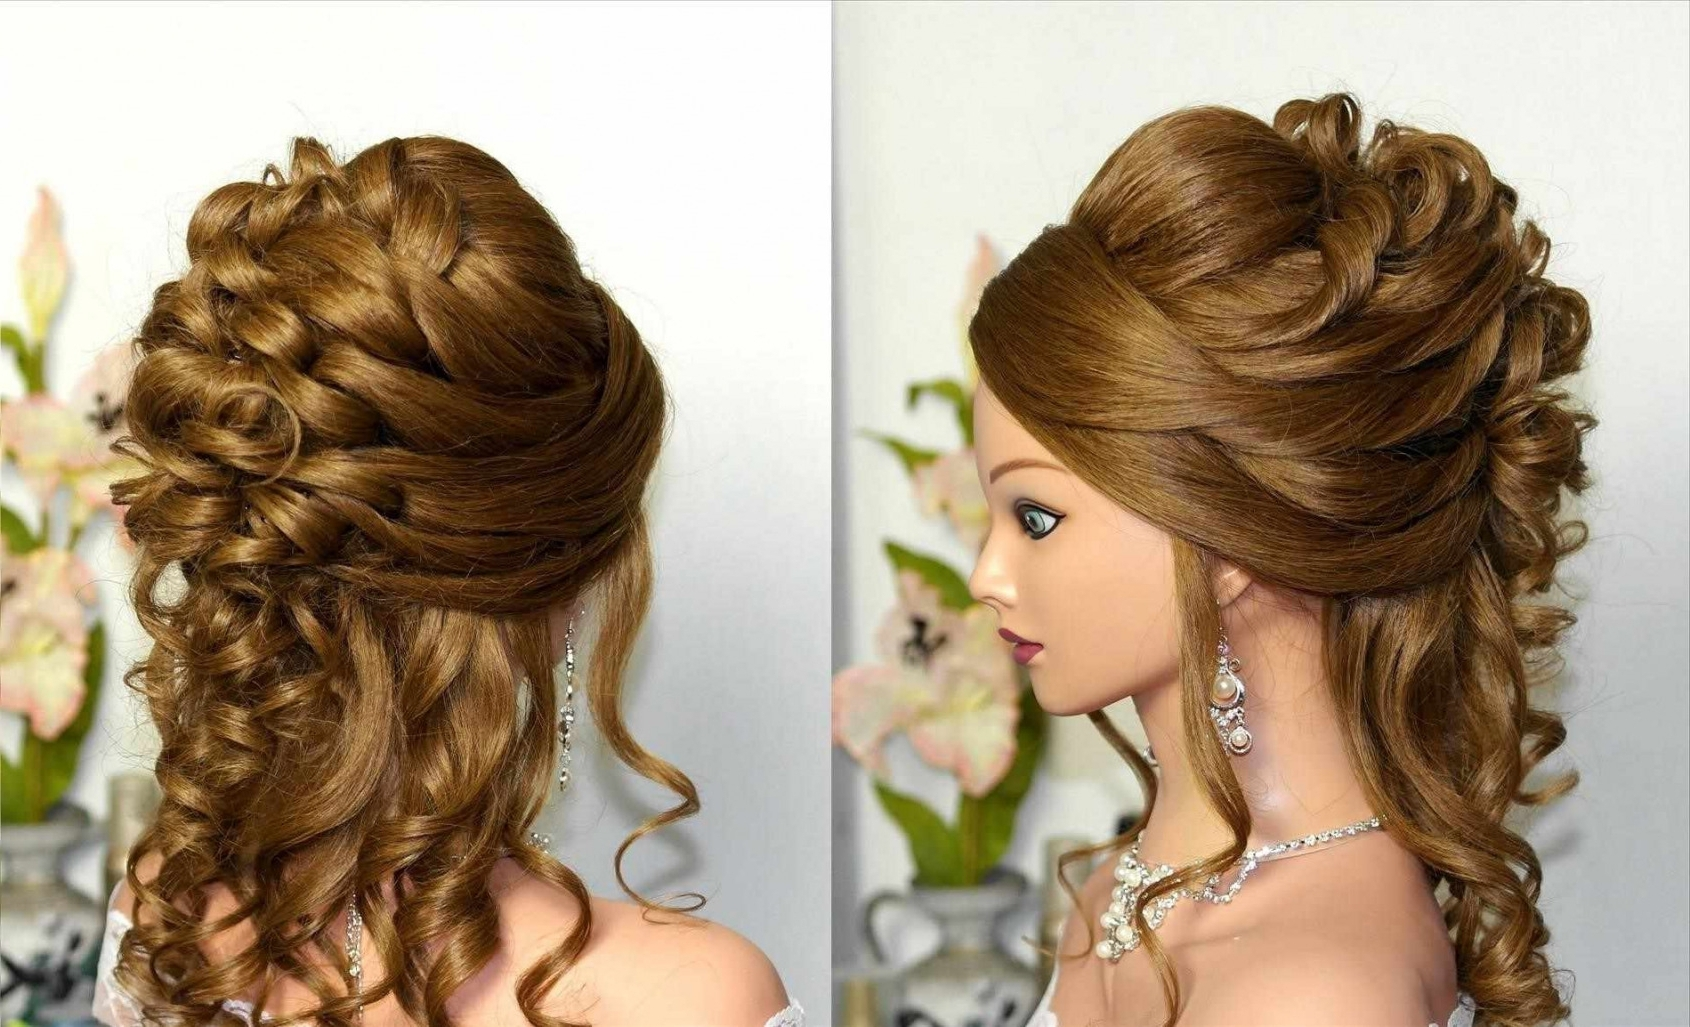 Best And Newest Wedding Hairstyles For Long Thick Hair With Best Wedding Hairstyles For Long Thick Hair Impressive Updos Curly (View 11 of 15)